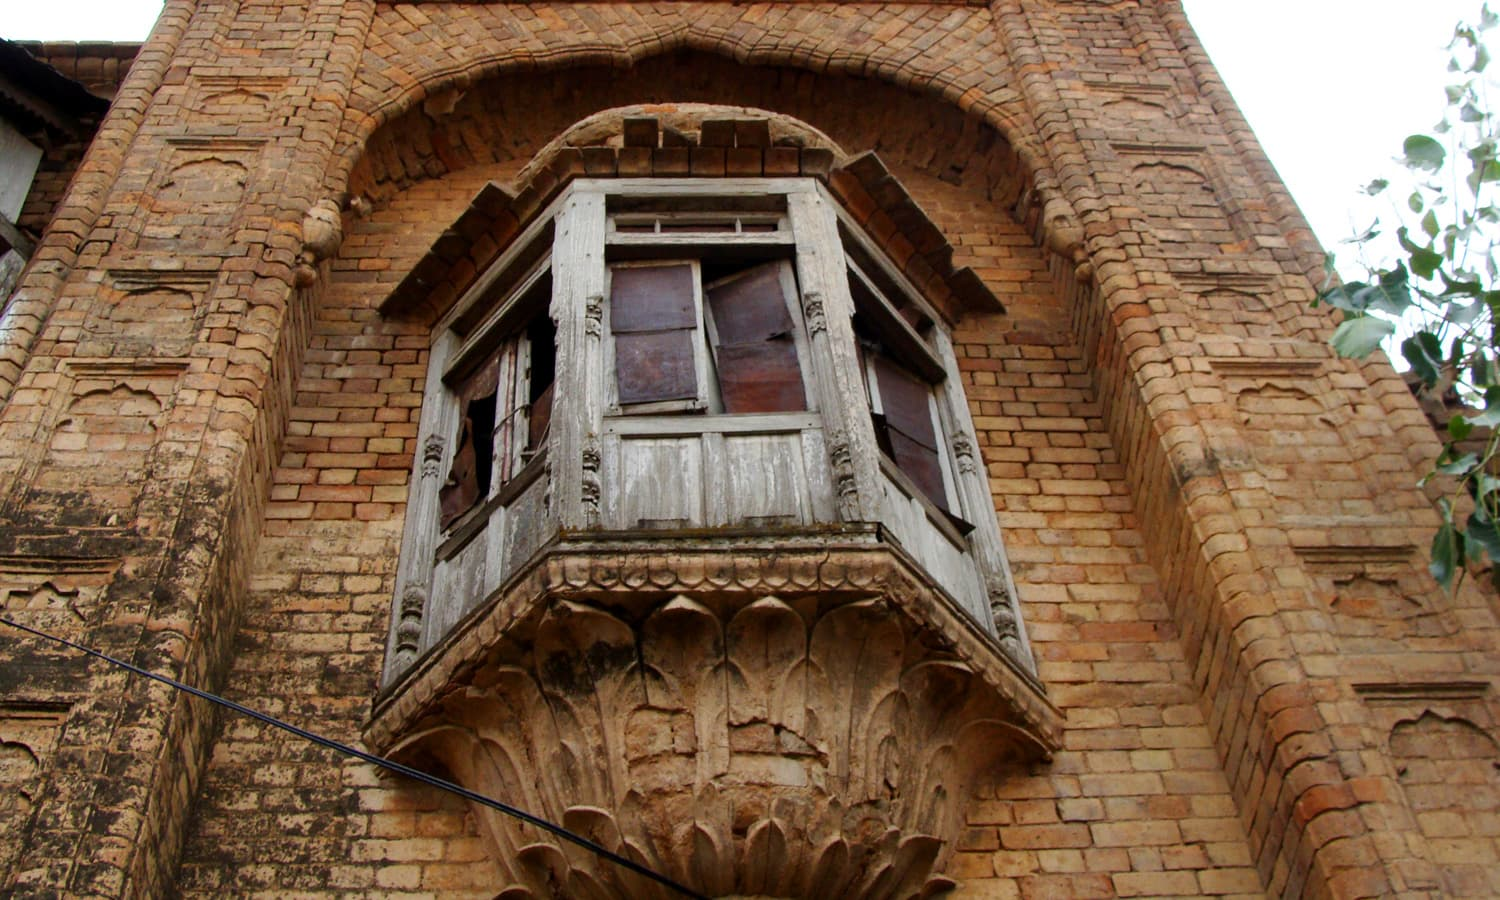 Jharoka in Jeevan Singh haveli in Daultala.